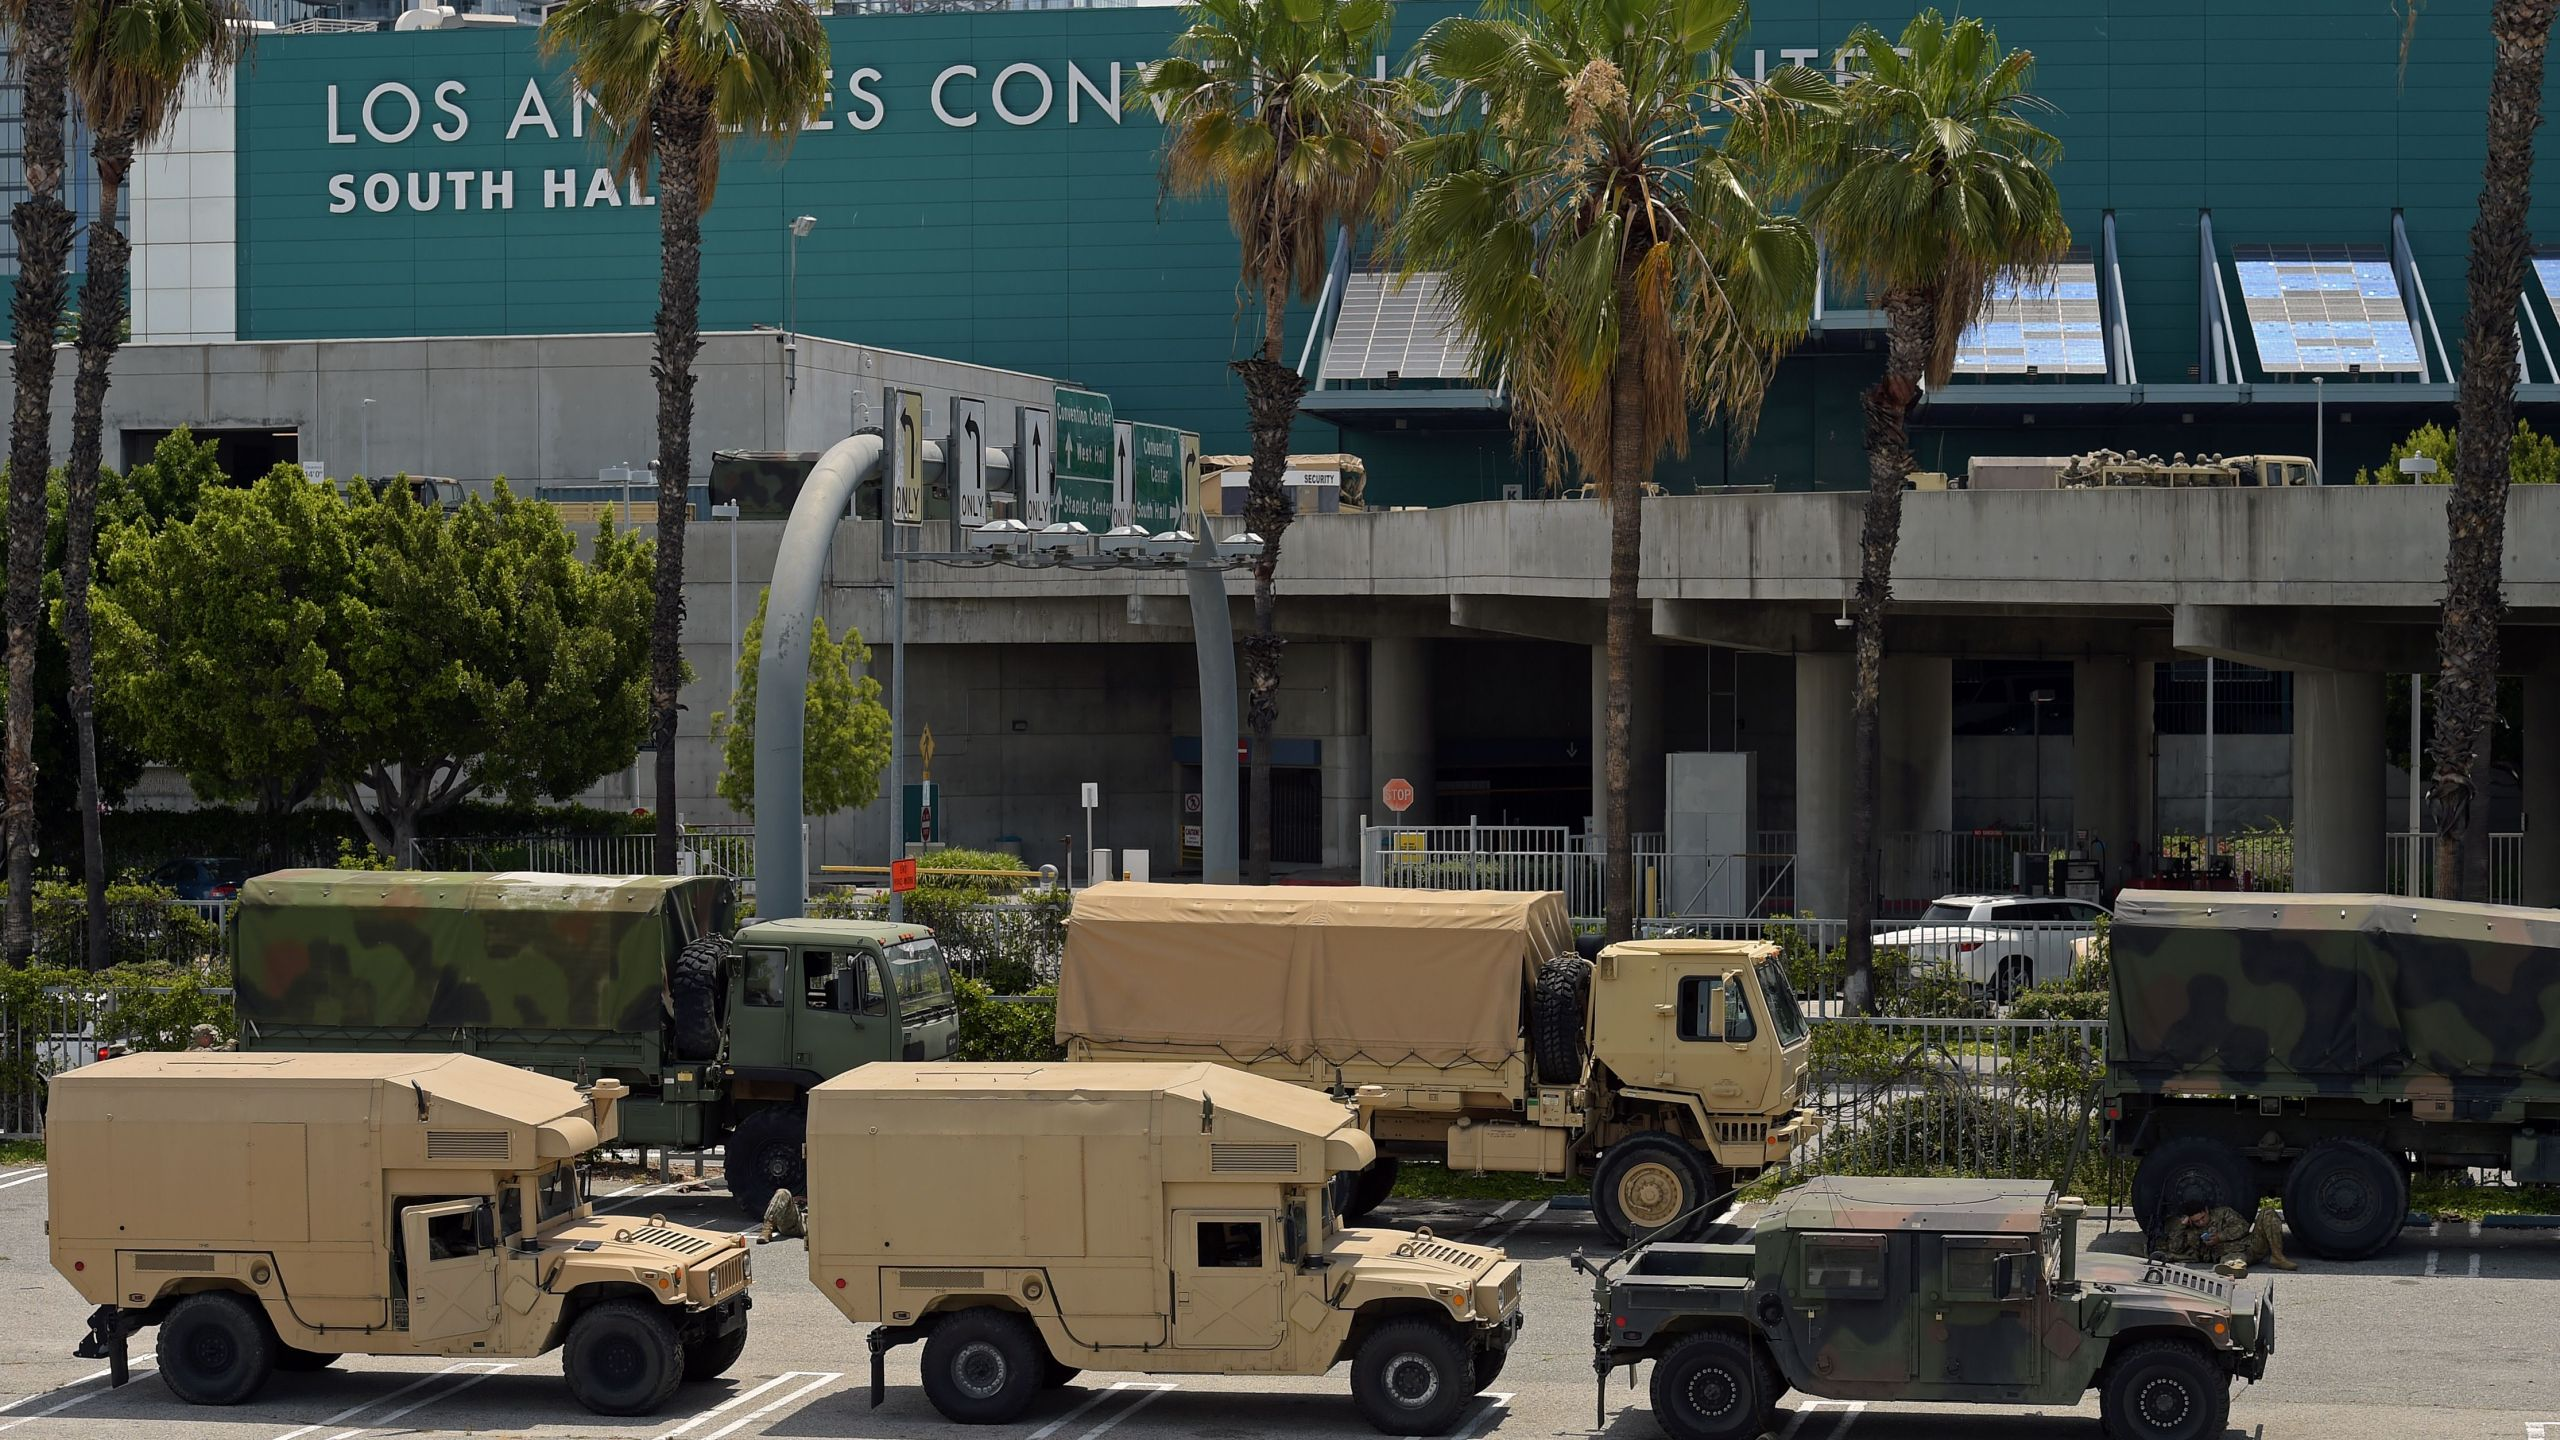 California National Guard vehicles are seen parked at the Los Angeles Convention Center on May 31, 2020. (AGUSTIN PAULLIER/AFP via Getty Images)